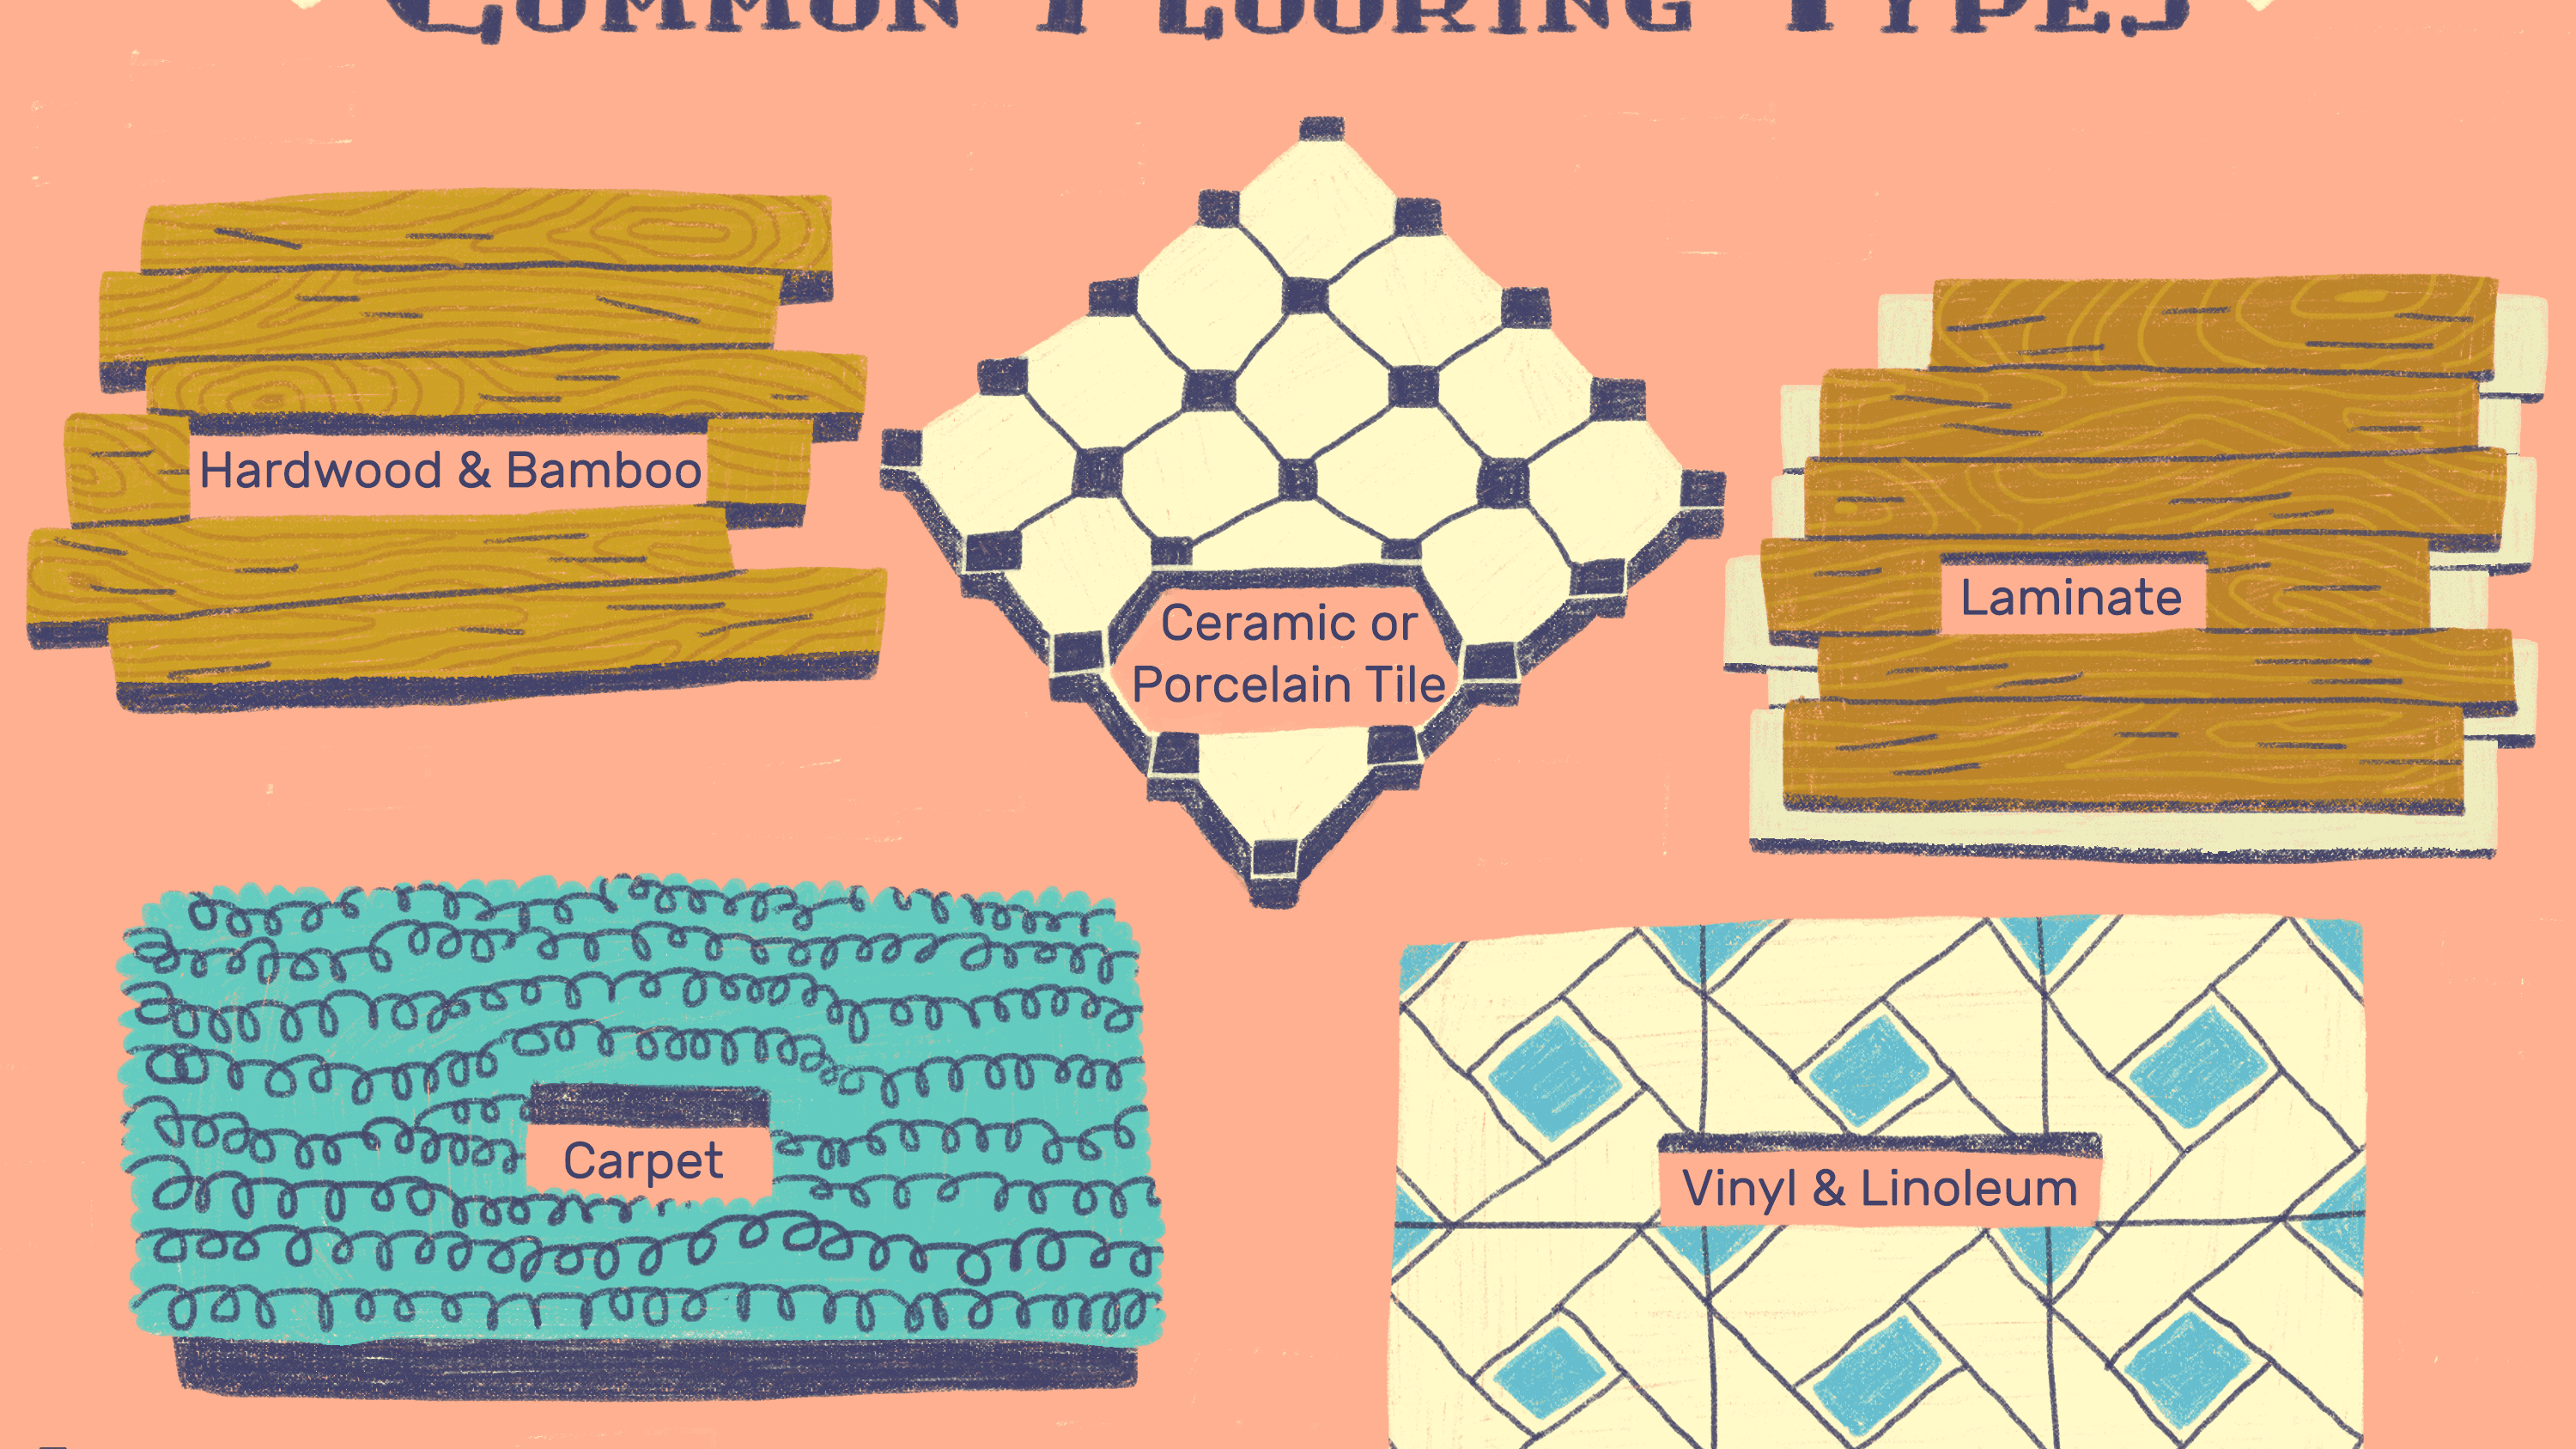 Common Flooring Types Curly Used In